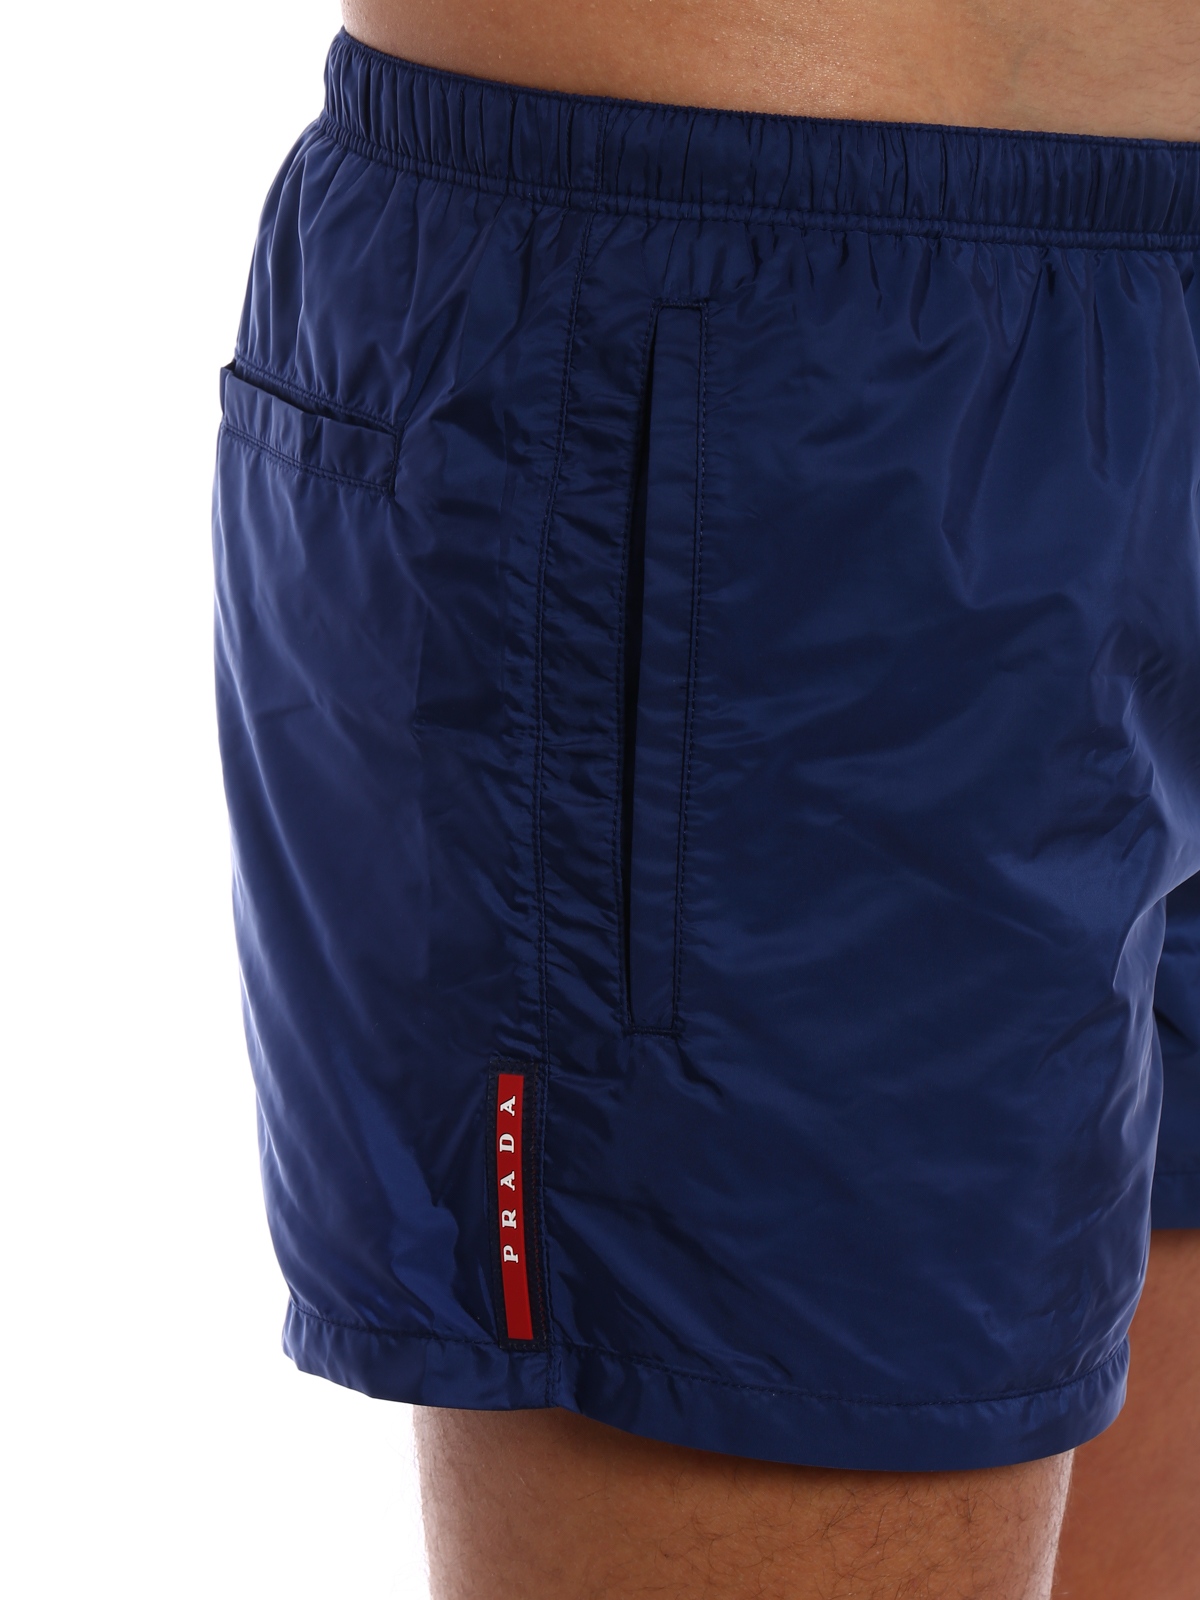 211b85aef9c Prada - Blue nylon swim shorts - Swim shorts & swimming trunks ...